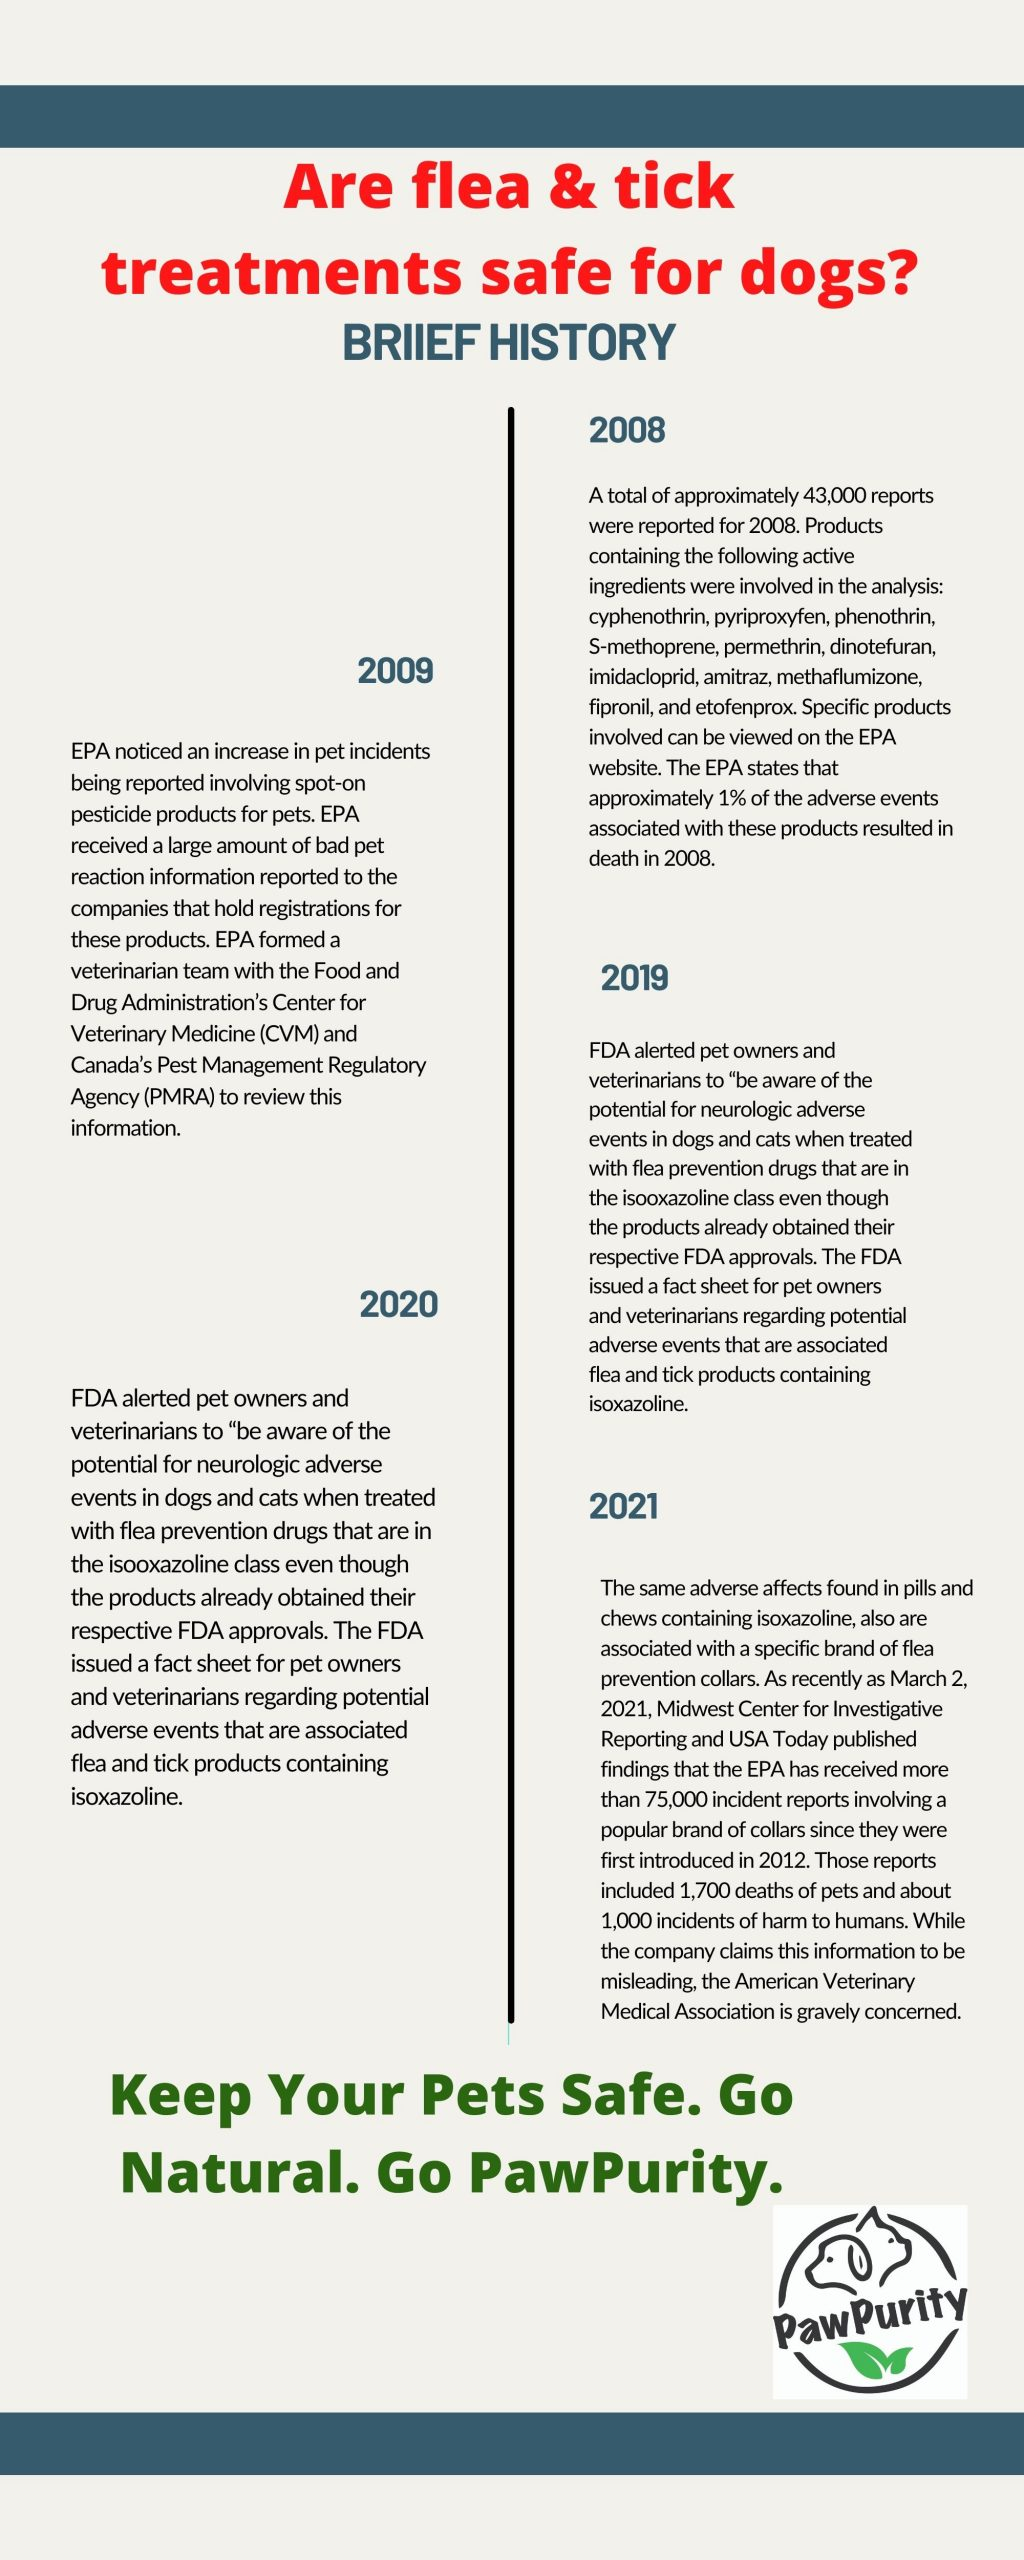 A timeline showing adverse affects of flea and tick treatments on pets which can be eliminated by using PawPurity 100% natural flea & tick repellents